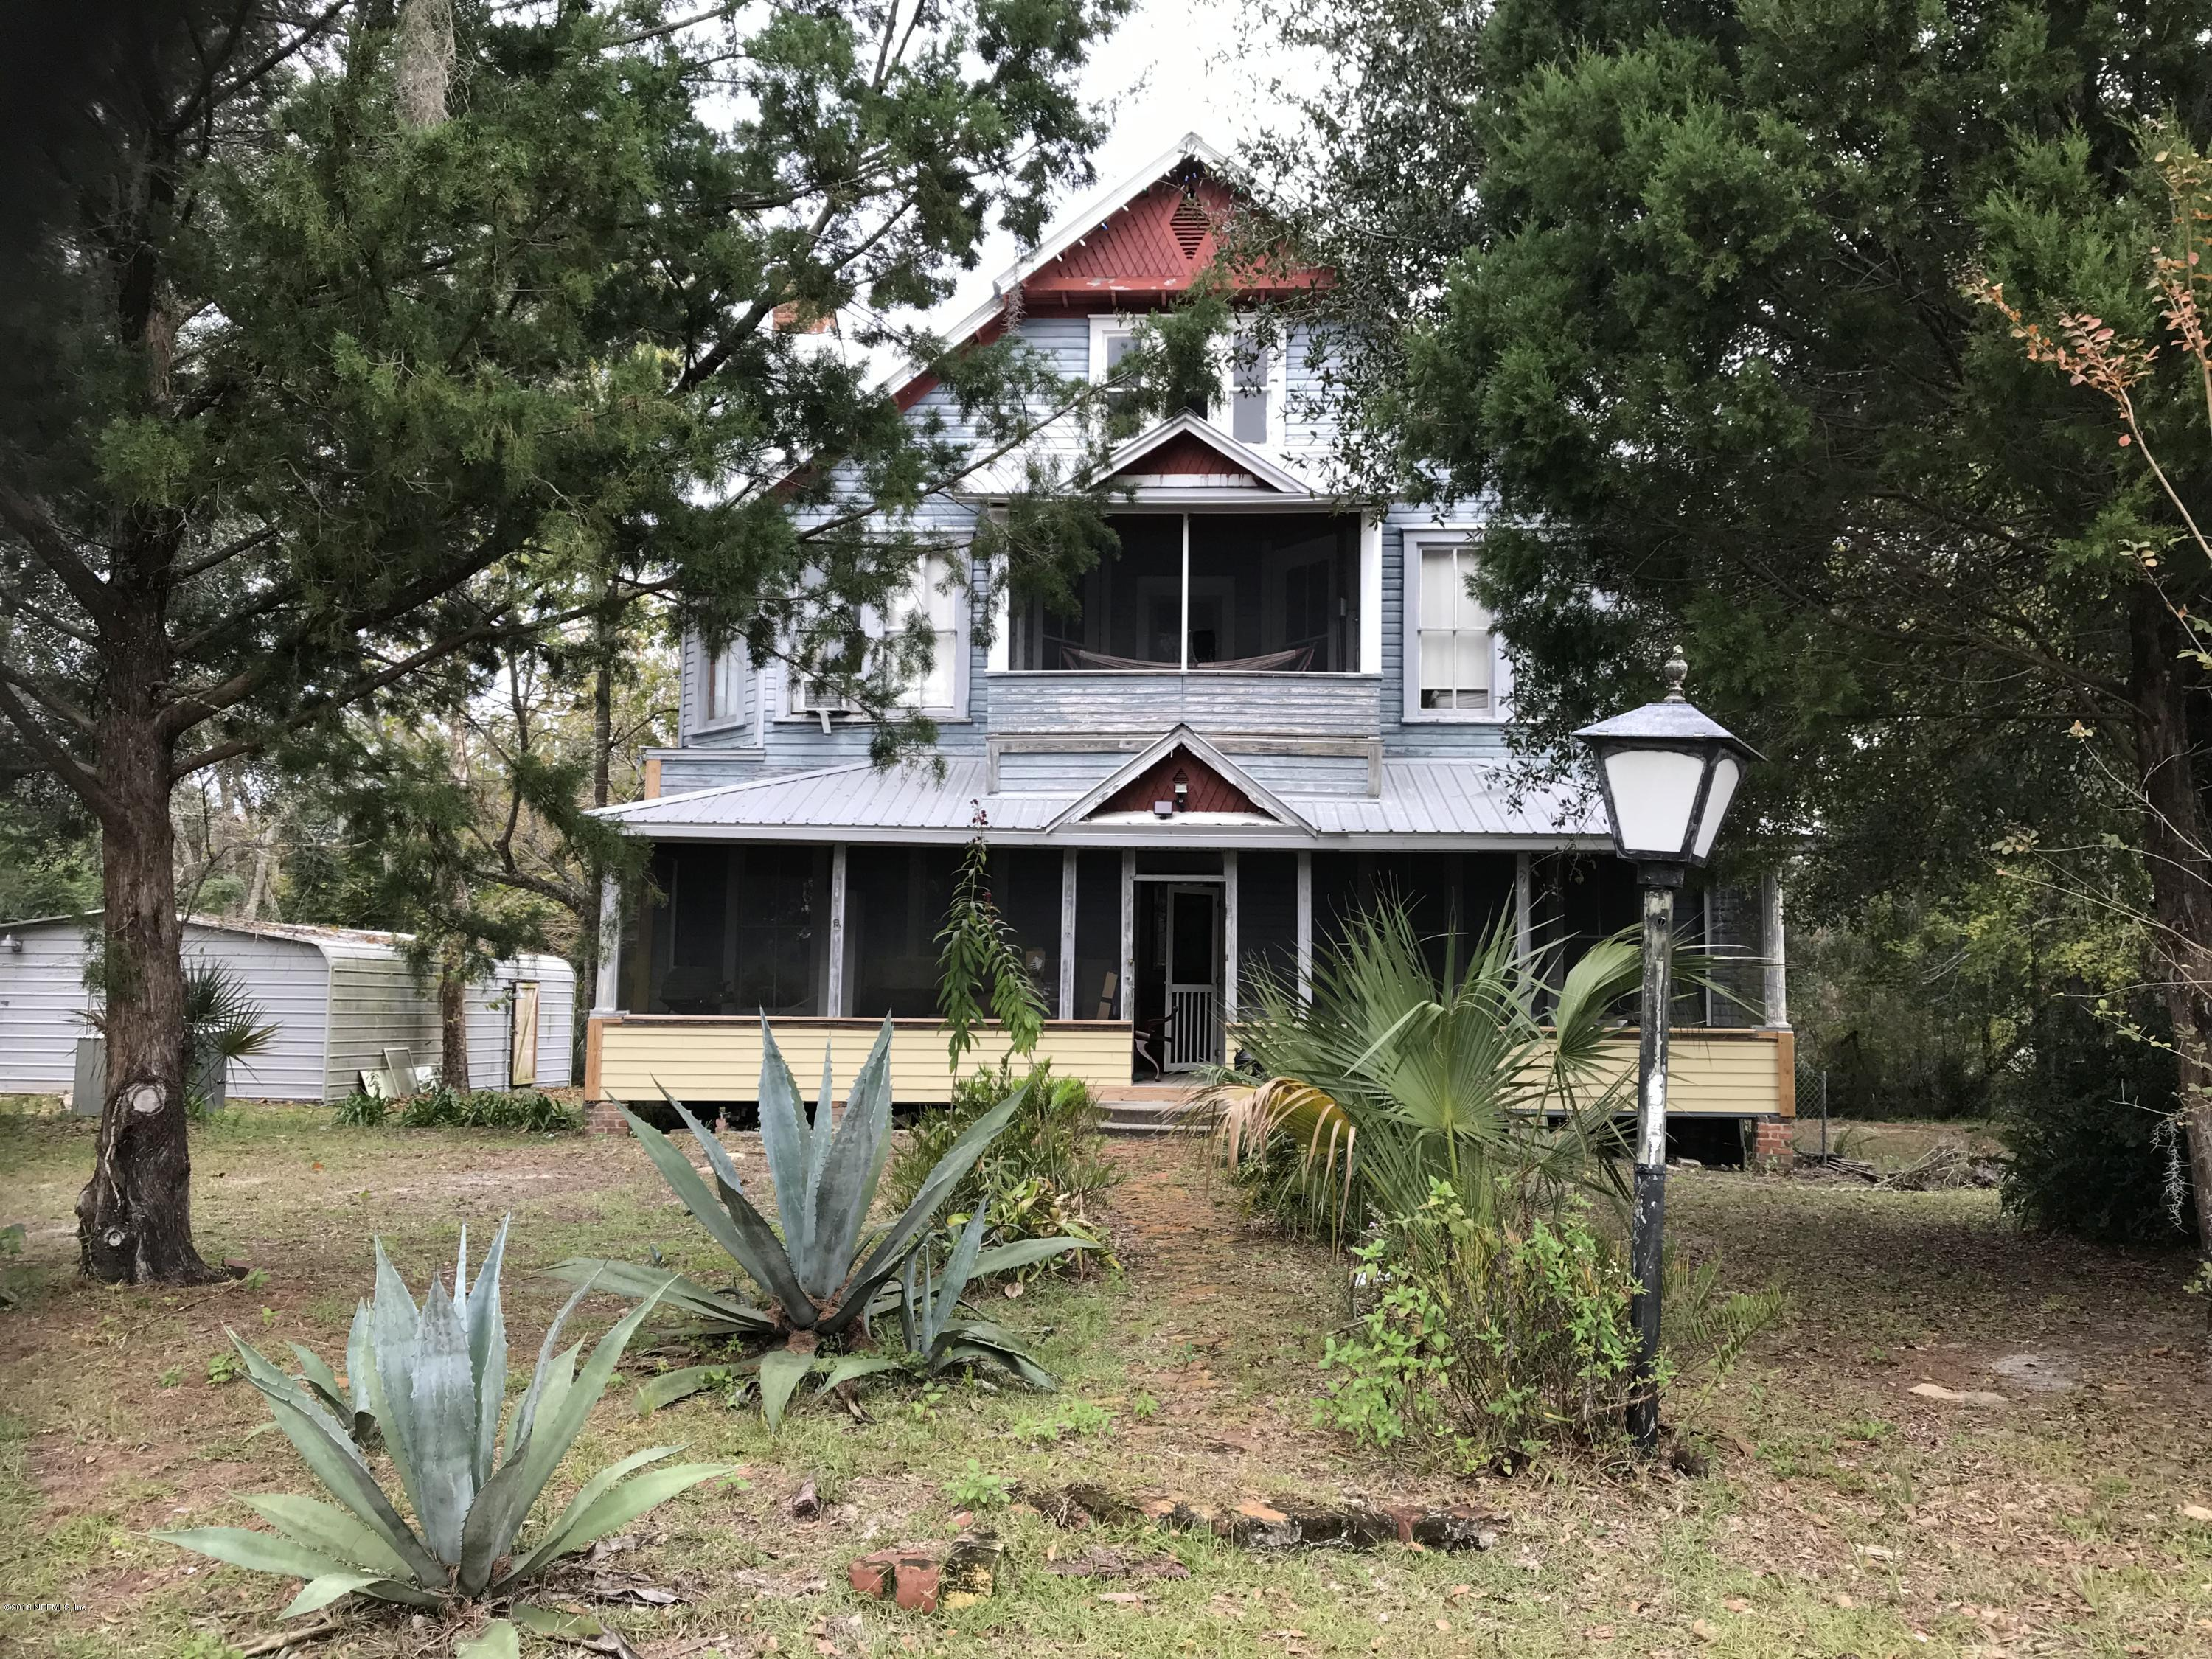 116 MAIN, POMONA PARK, FLORIDA 32181, 8 Bedrooms Bedrooms, ,3 BathroomsBathrooms,Residential - single family,For sale,MAIN,970089